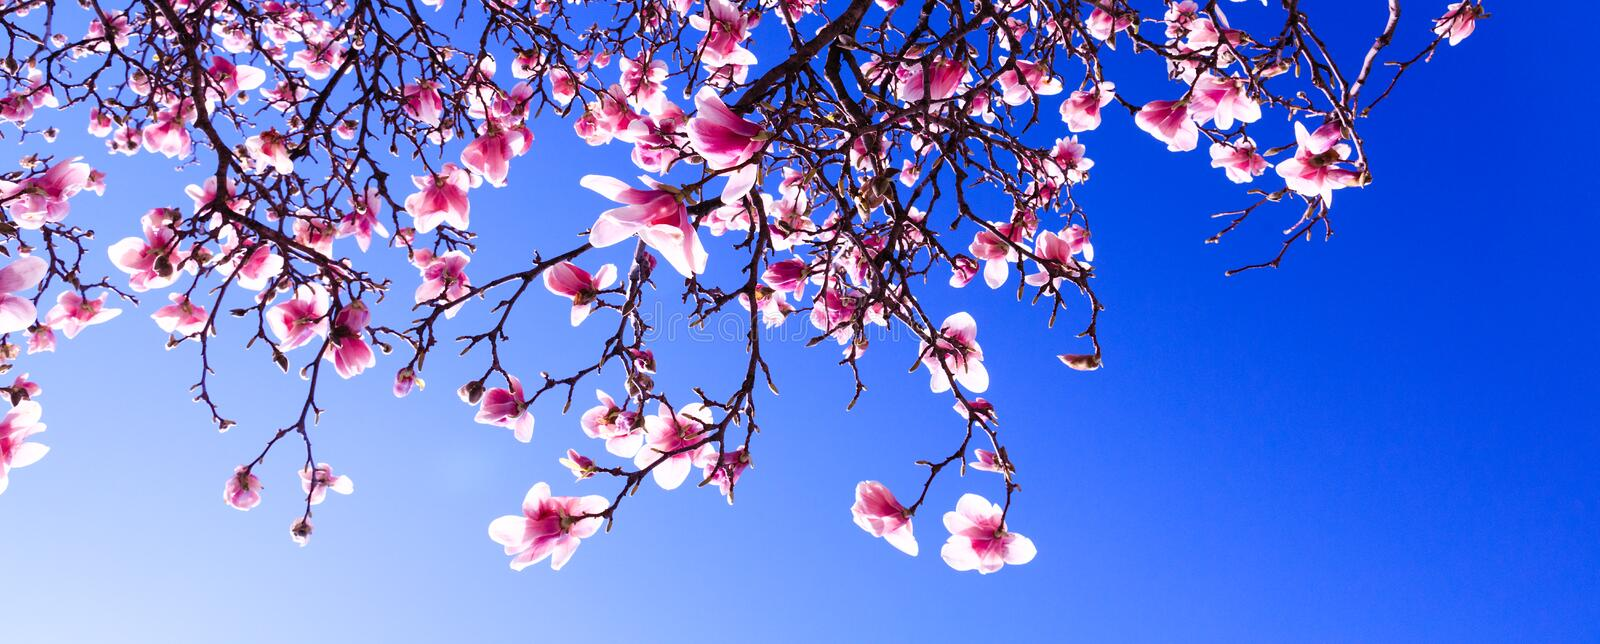 Sprouts of magnolia tree on background of blue sky, during spring period. Budded branch with pink flowers in bloom season. Flourishing or bloom period for the royalty free stock photography